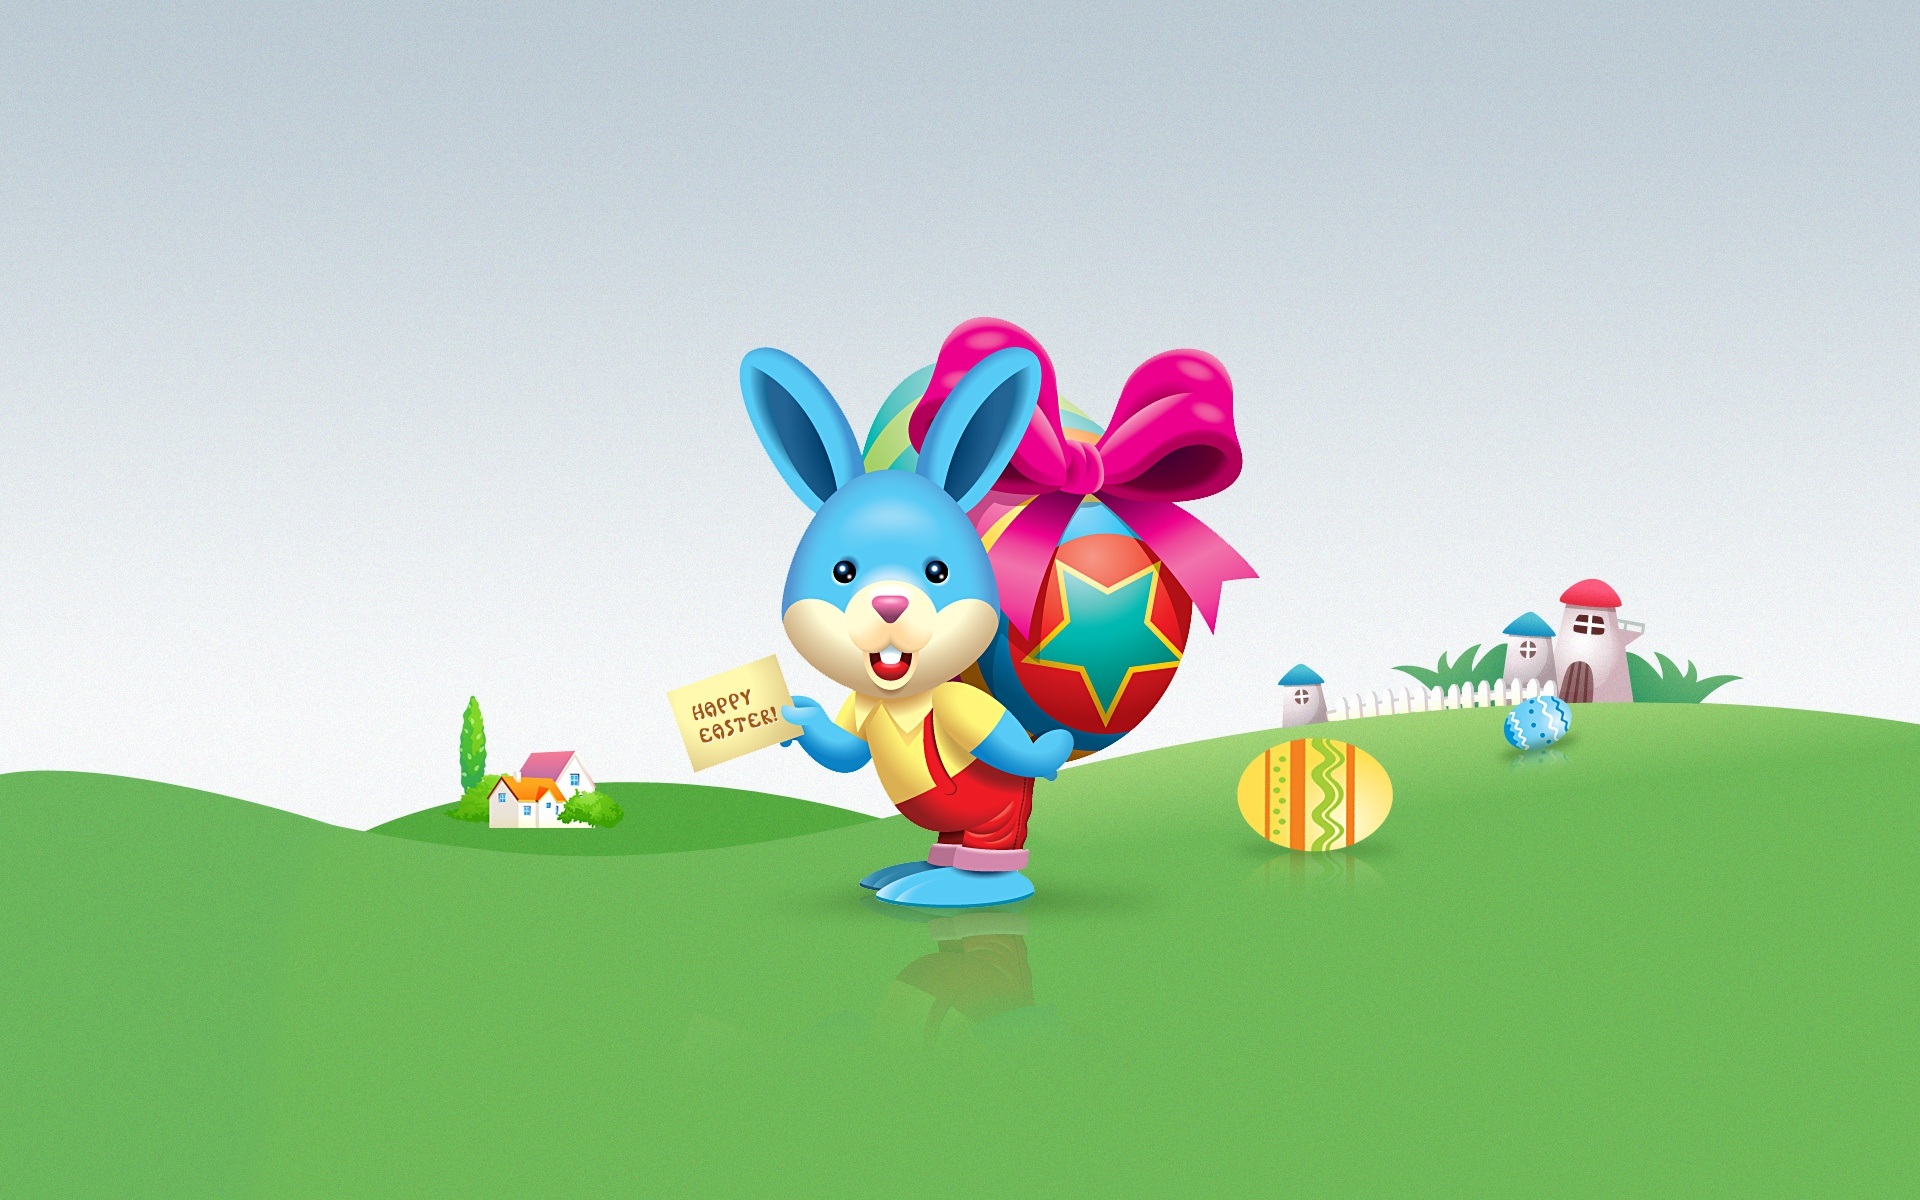 Happy Easter Bunny Wallpapers 1920x1200